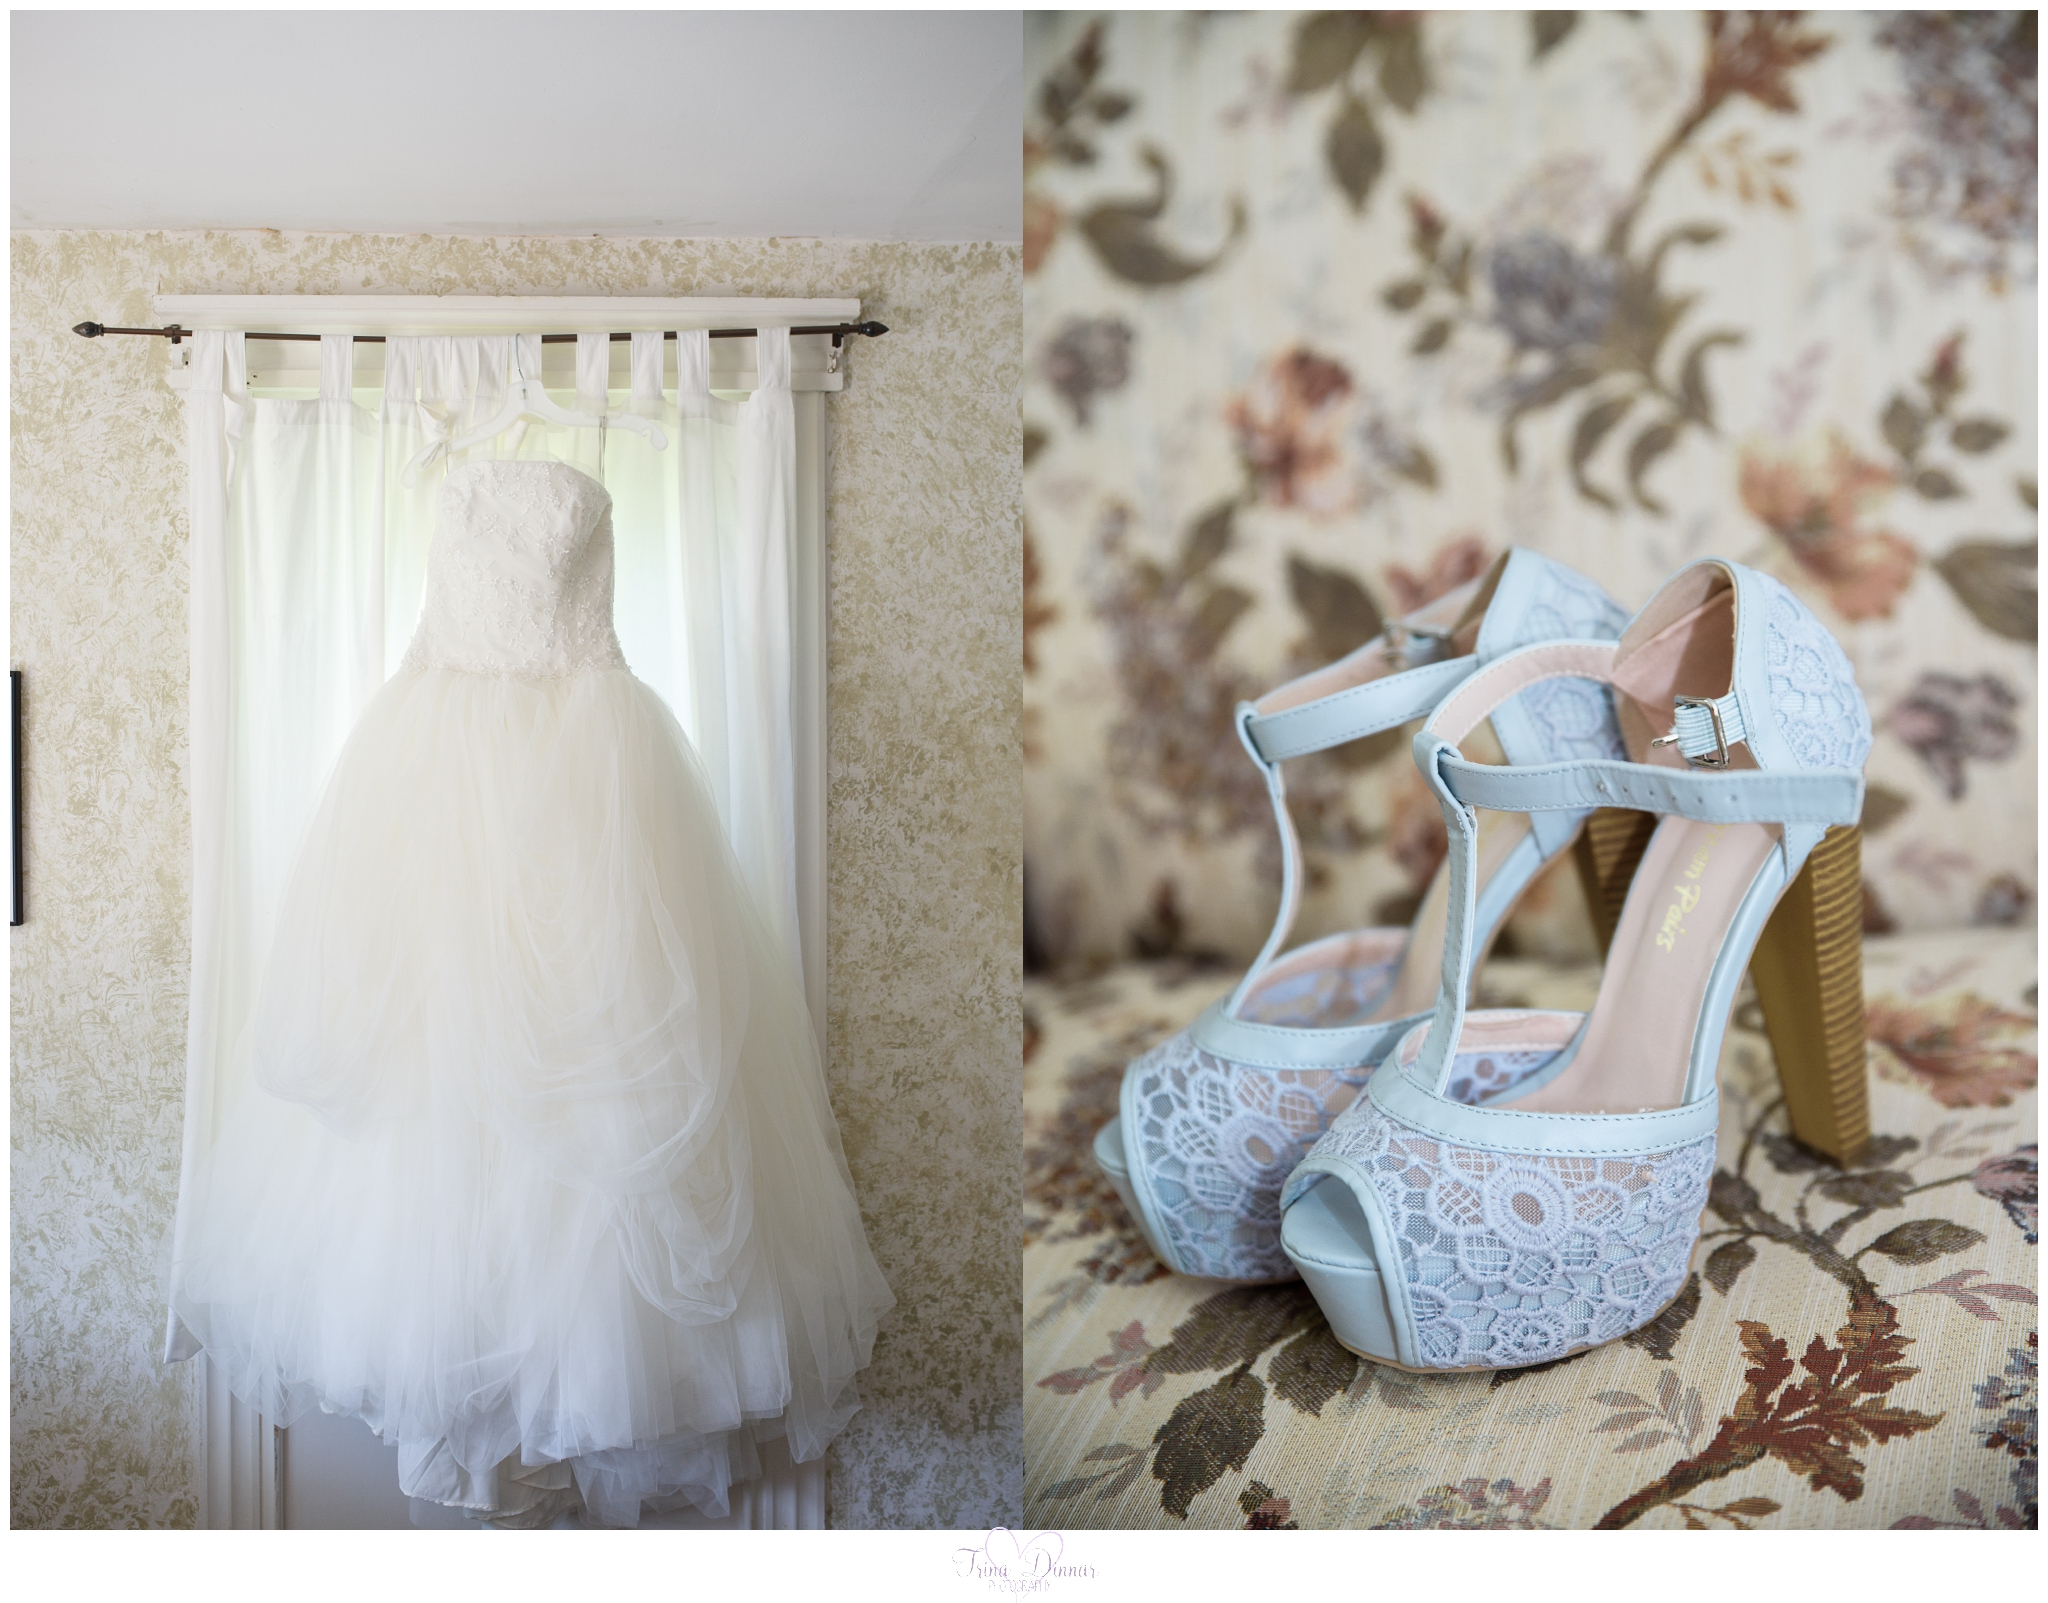 Vera Wang Bridal Gown and Shoes at the Peru Maine Worthley Farmhouse.